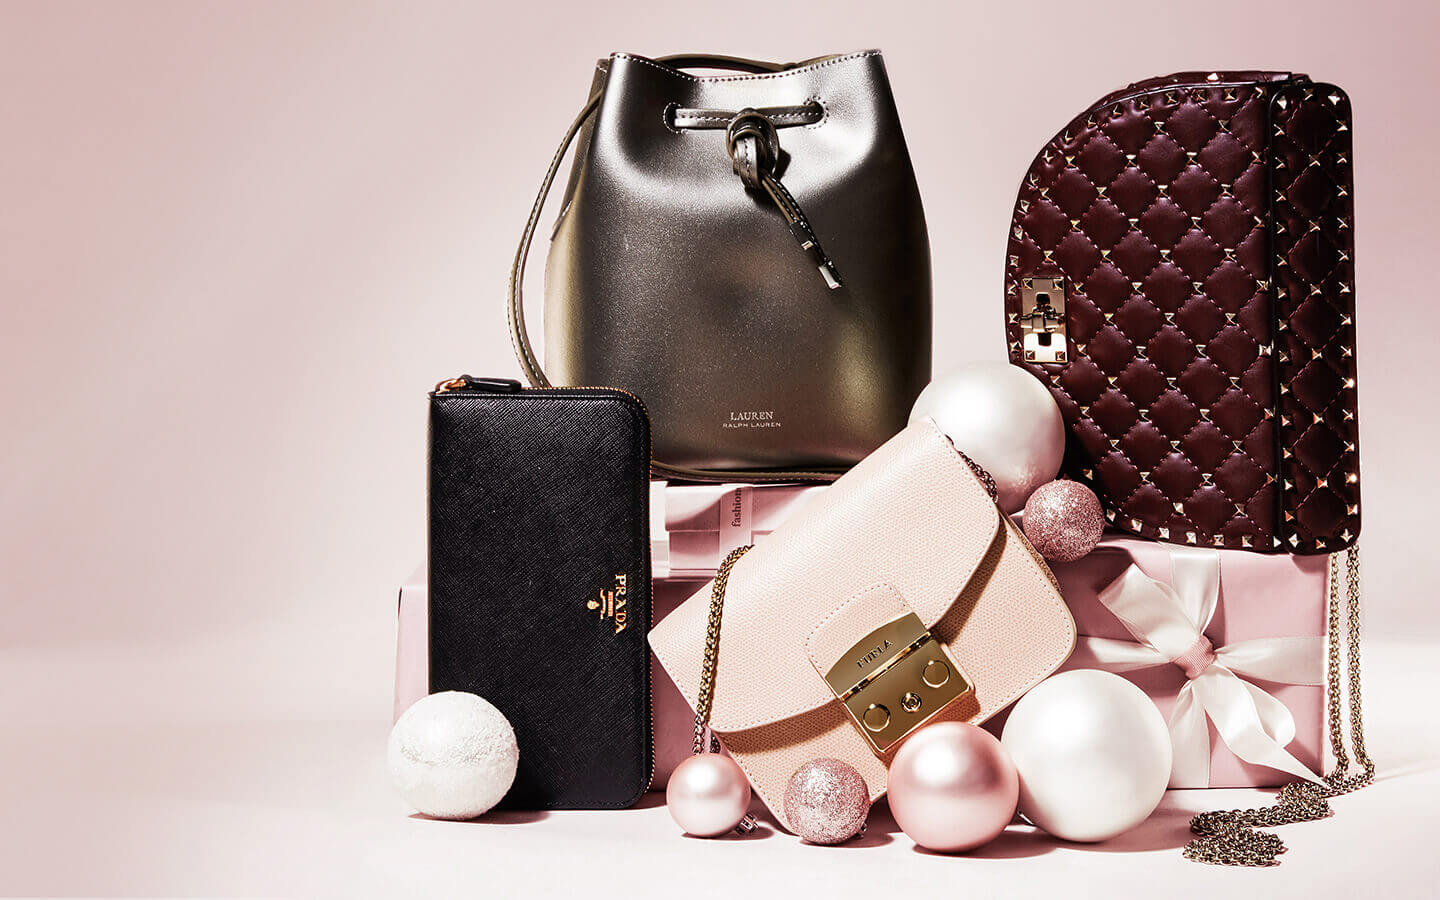 Give In To Your Handbag Desires Fashionette Will Fulfil Wishes This Christmas